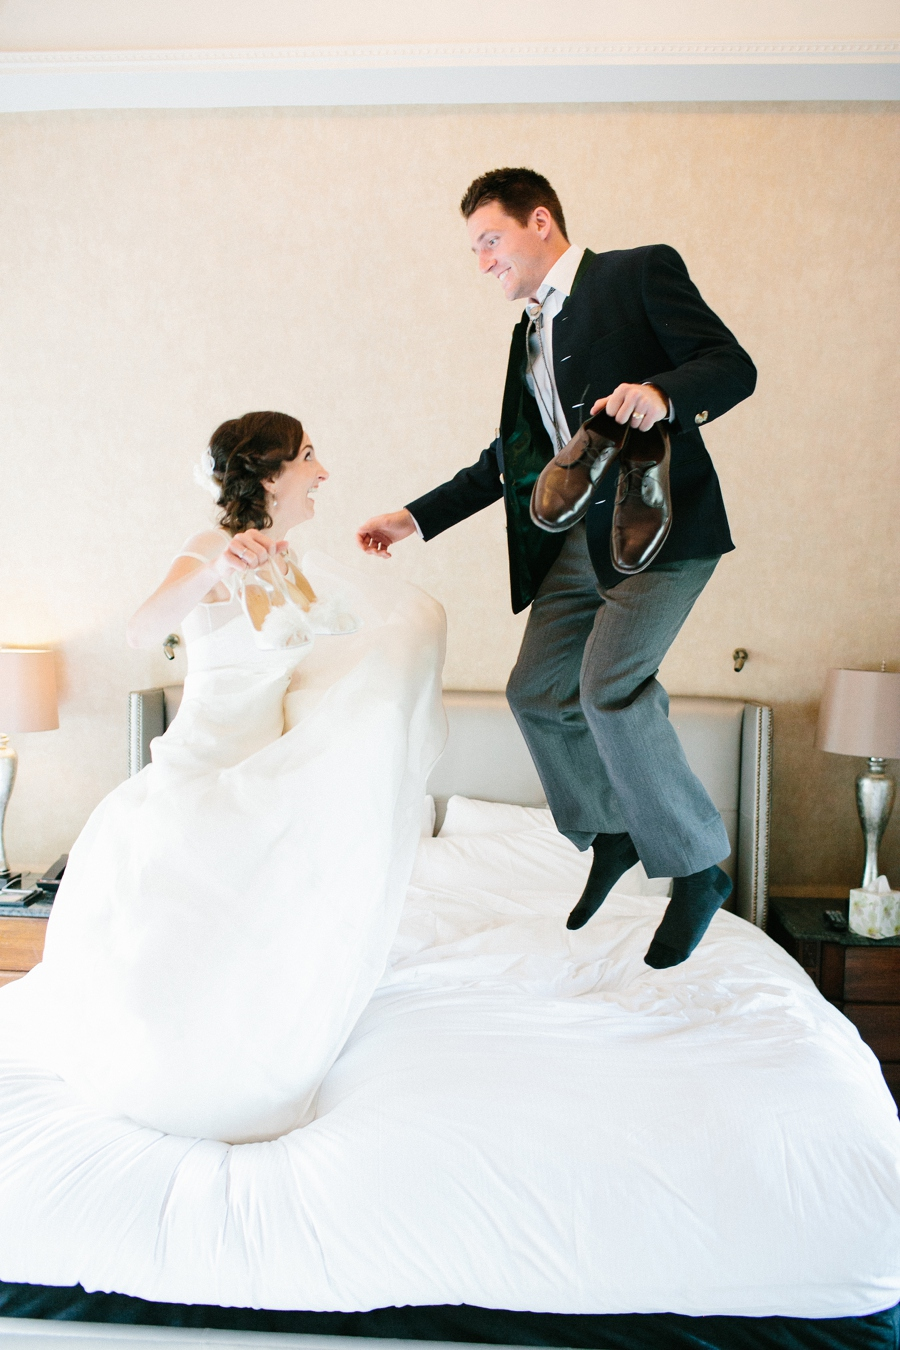 136_The_Fairmont_Banff_Springs_Banff_Alberta_Canada_Wedding_Photo.JPG